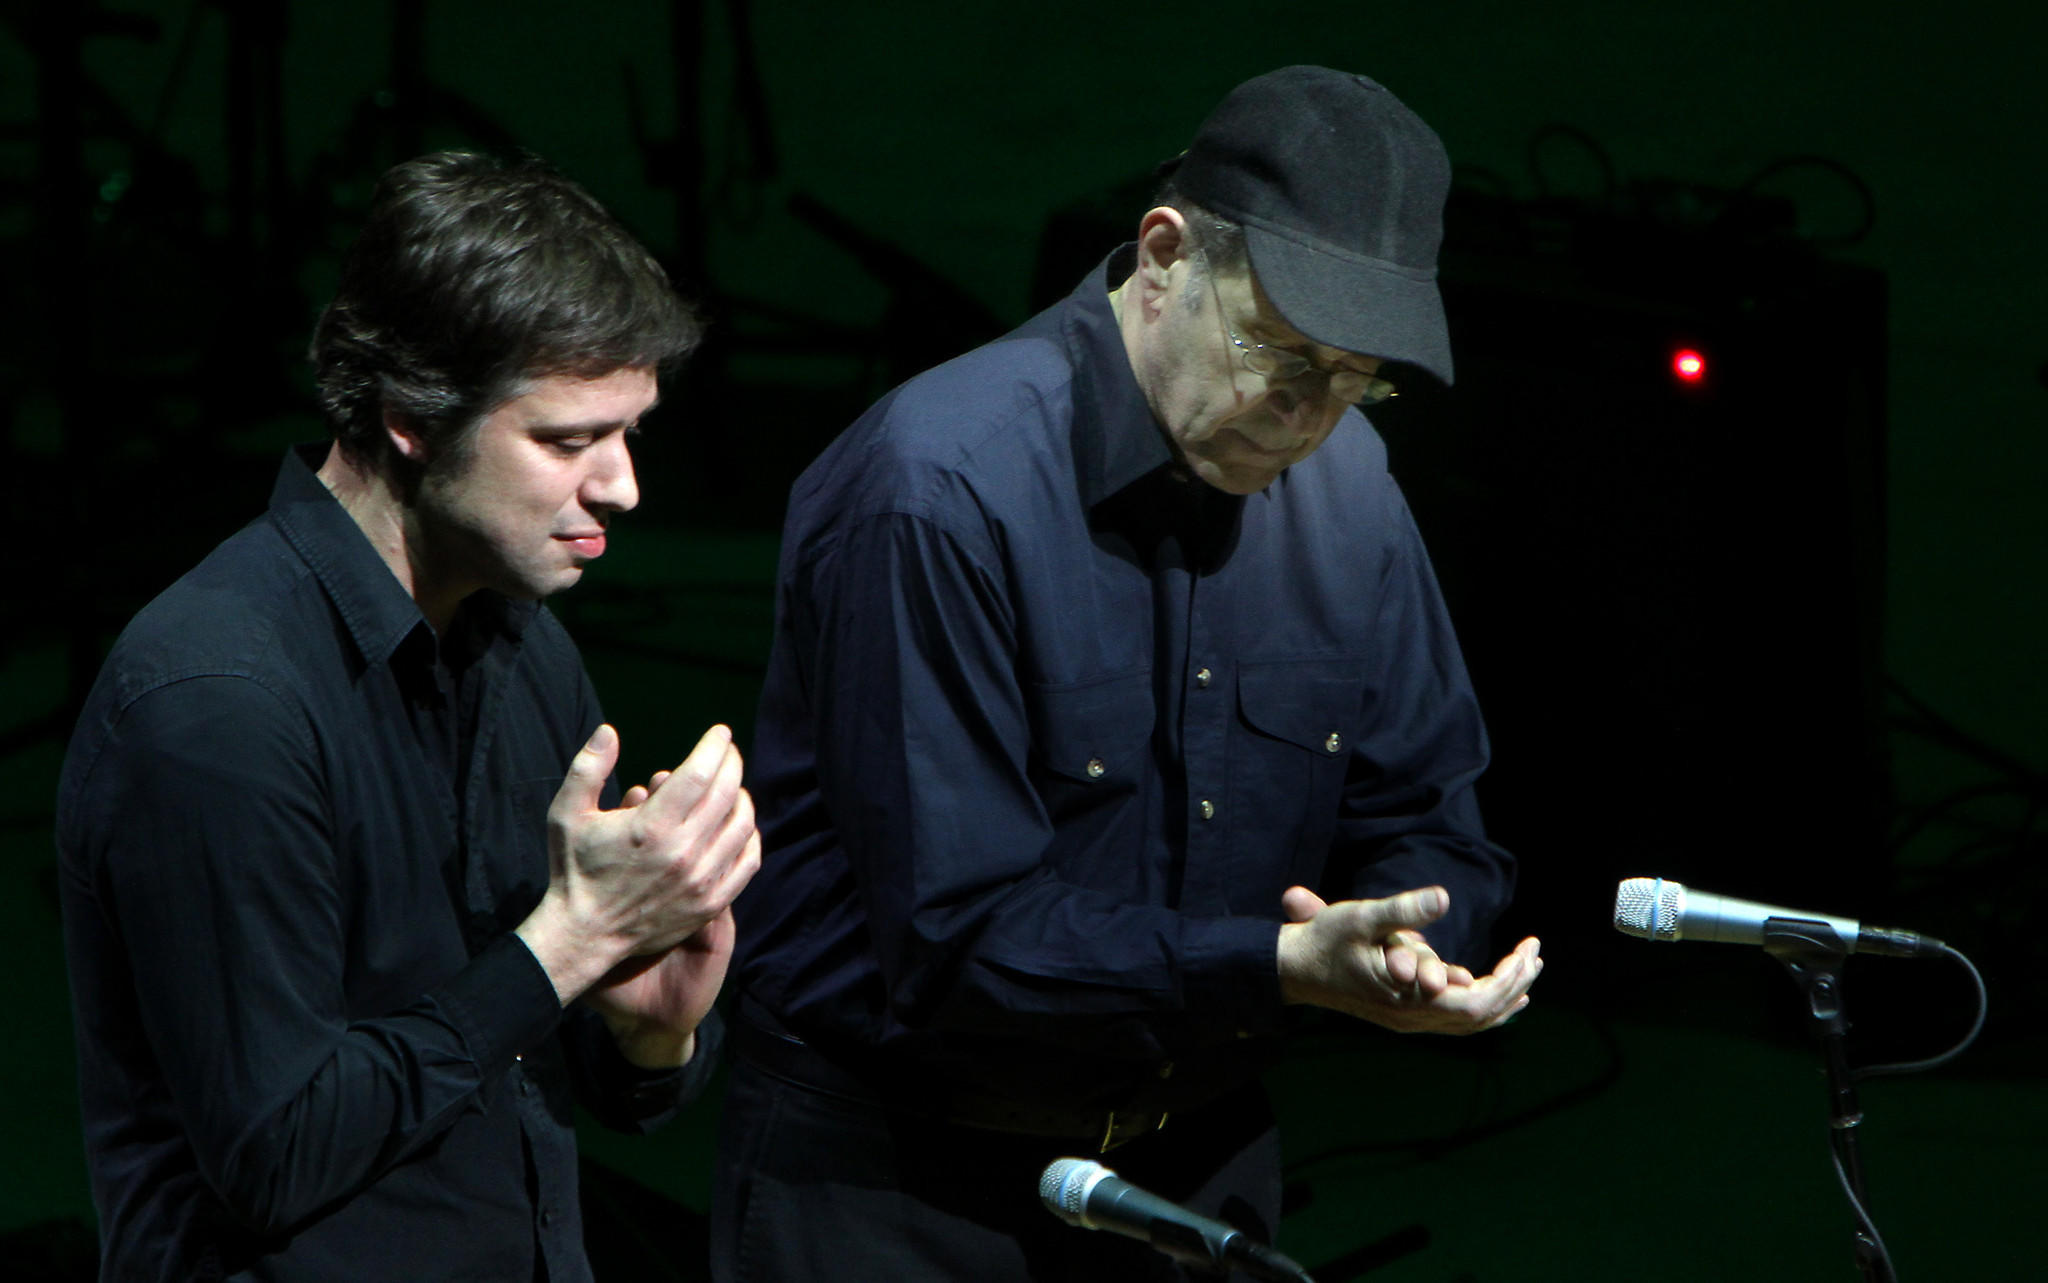 David Cossin and Steve Reich clapping music at Walt Disney Concert Hall, in Los Angeles, CA Jan. 17, 2012. The LA Phil's Green Umbrella celebrates Steve Reich's 75th birthday.